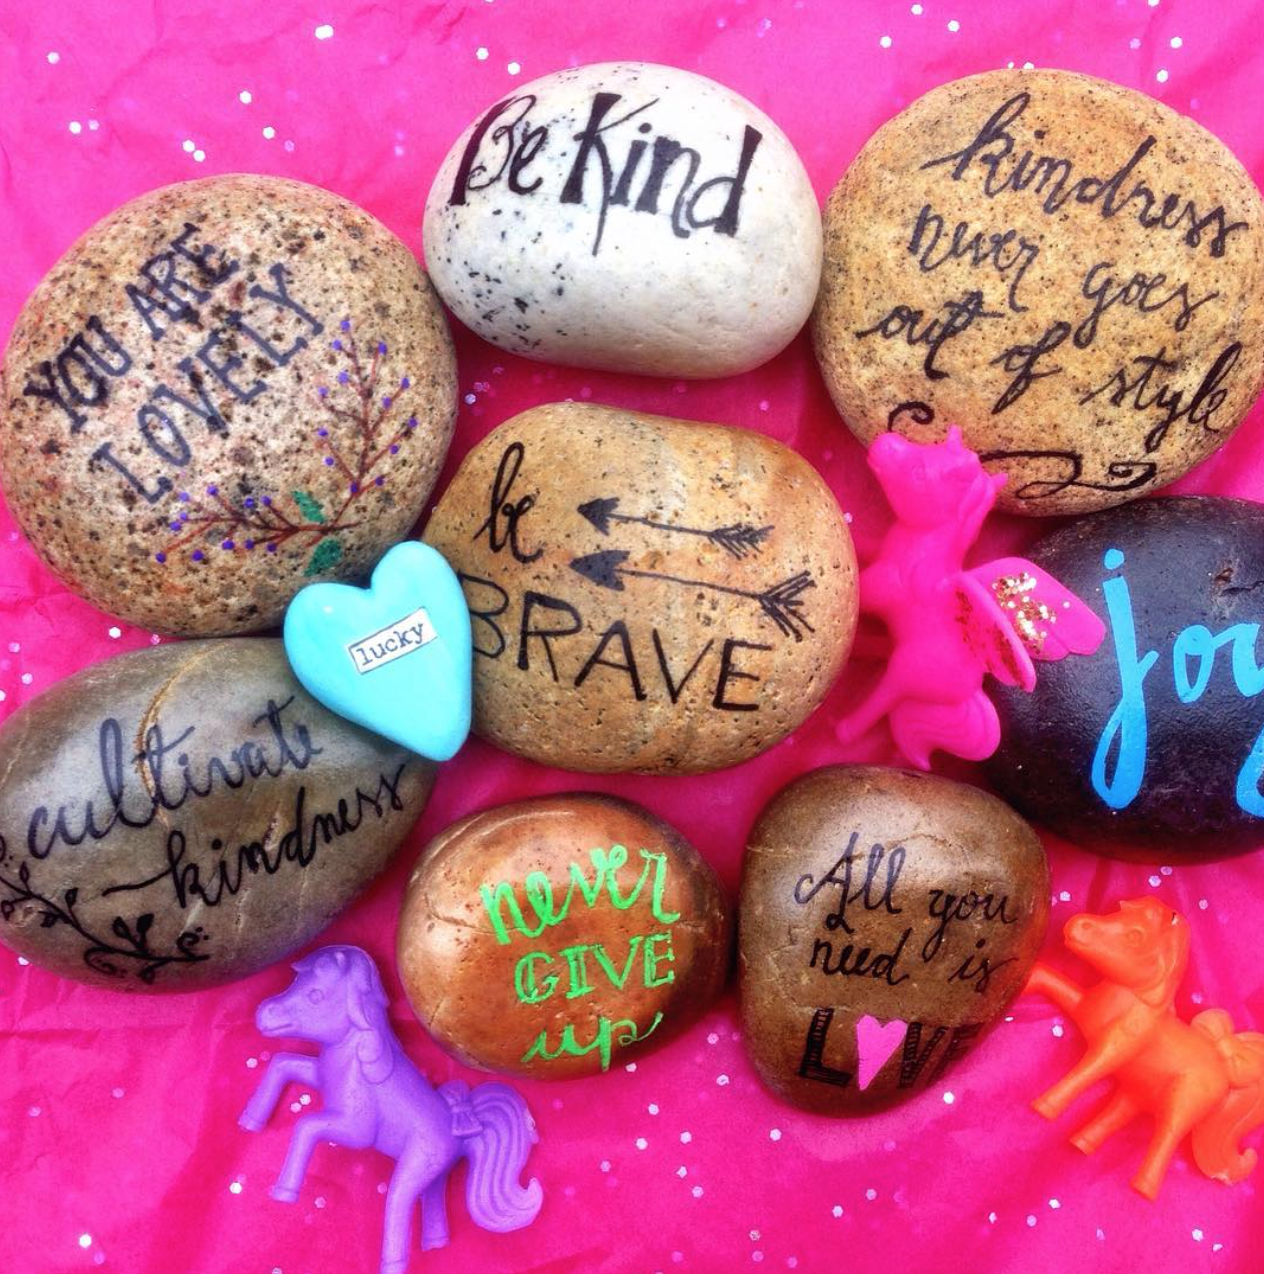 A blog about our project Word Rocks. We share rocks with positive